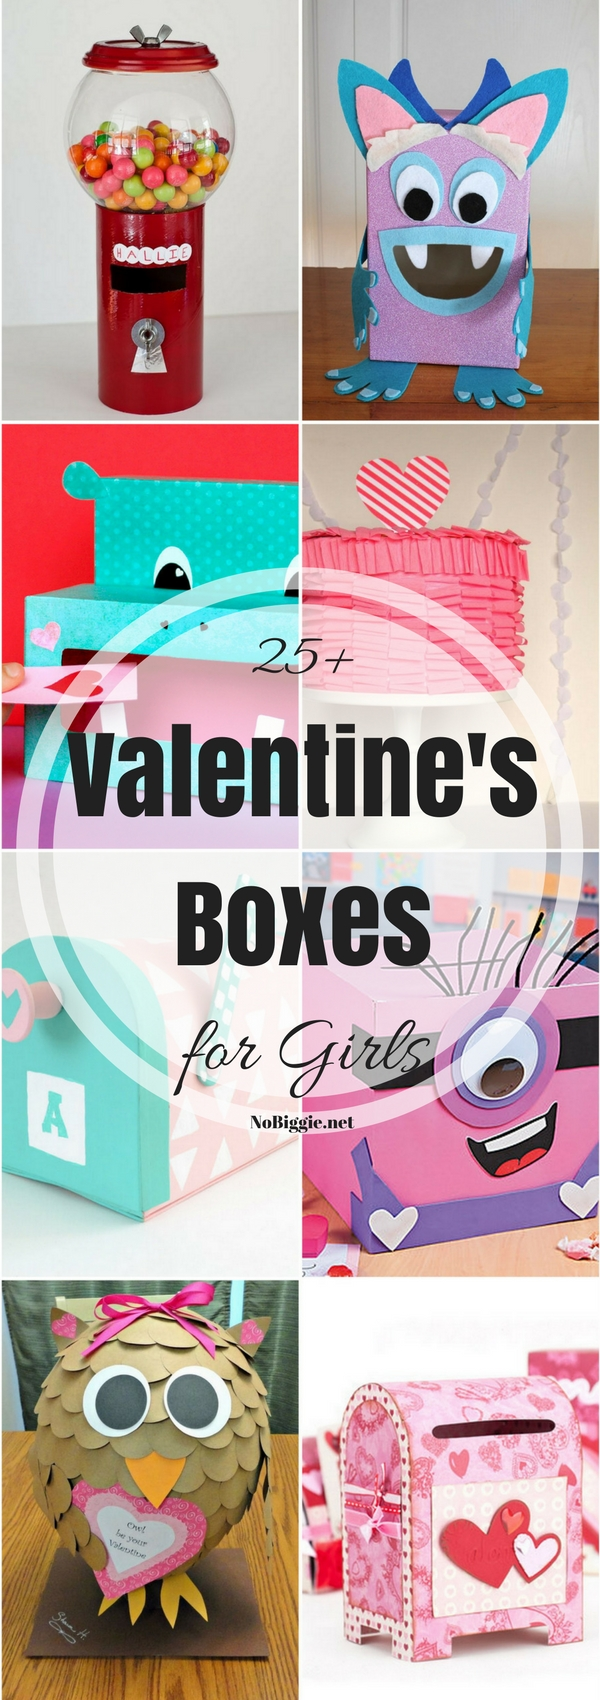 25+ Valentine Boxes for Girls | NoBiggie.net